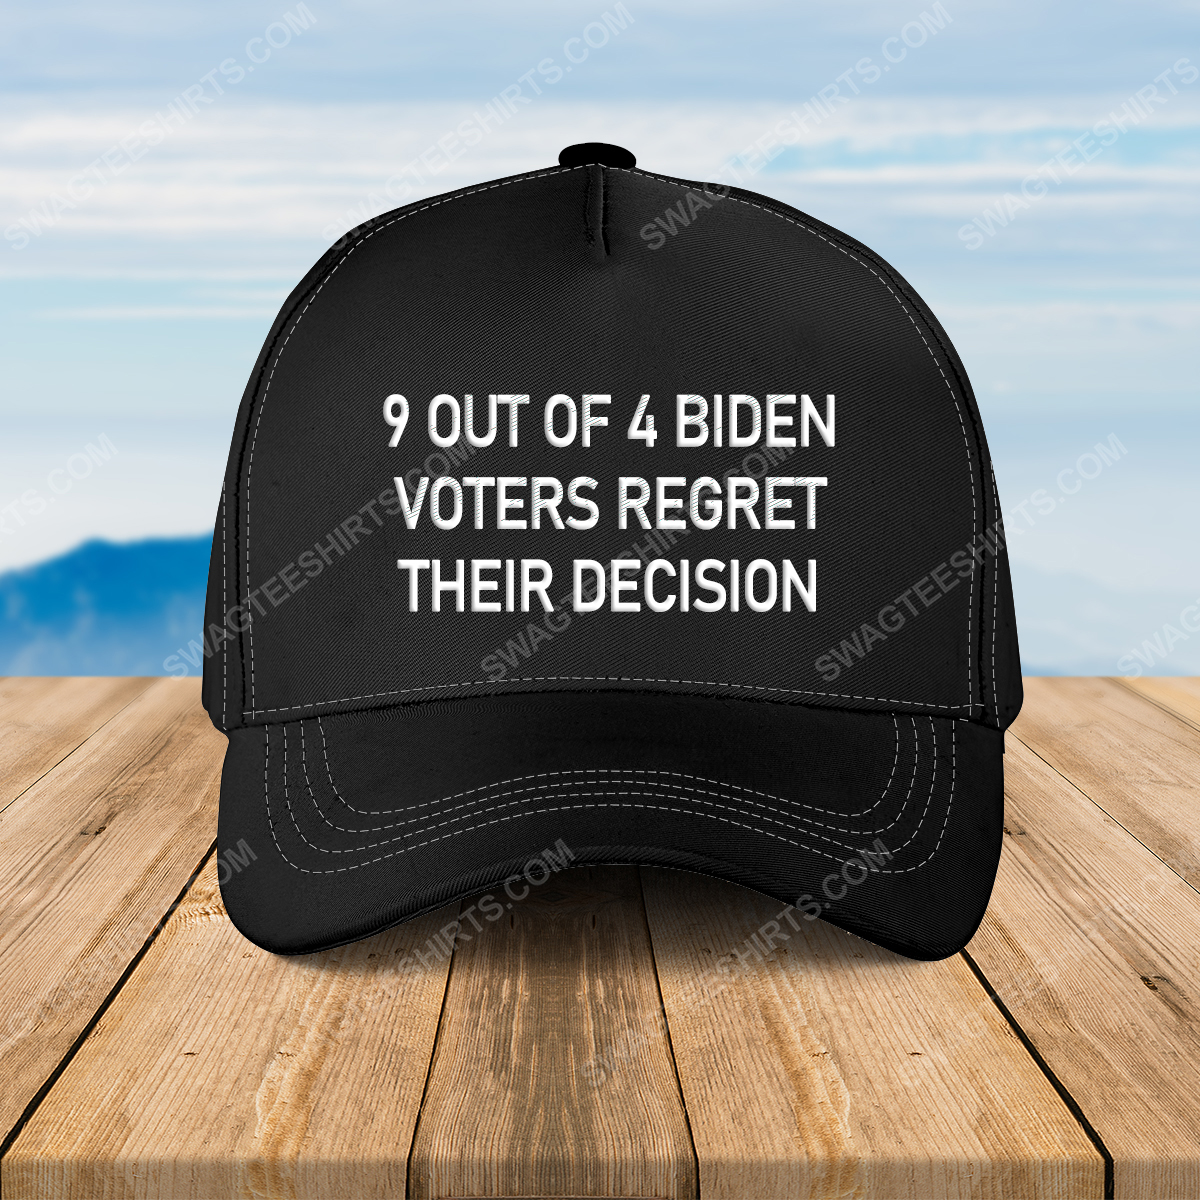 9 out of 4 biden voters regret their decision full print classic hat 1 - Copy